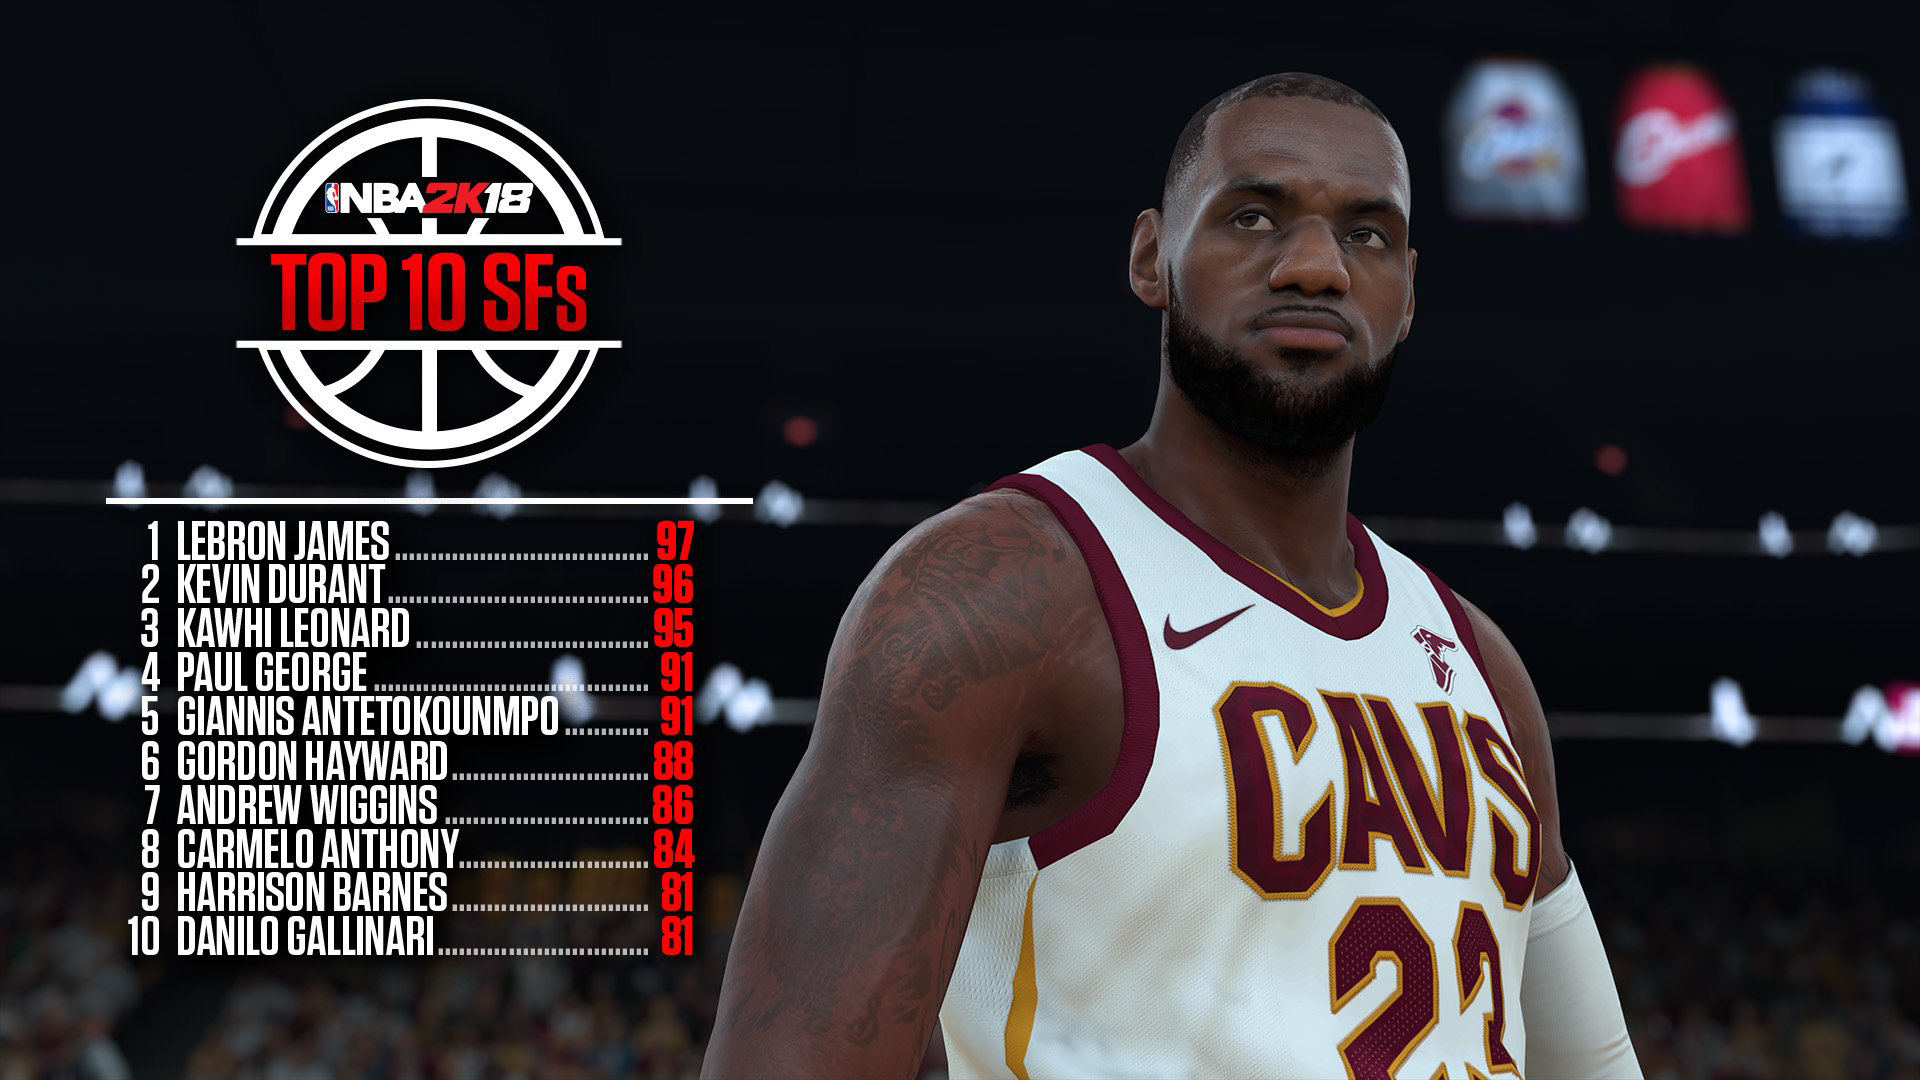 Top Ten Players Overall & By Position in NBA 2K18 | NLSC